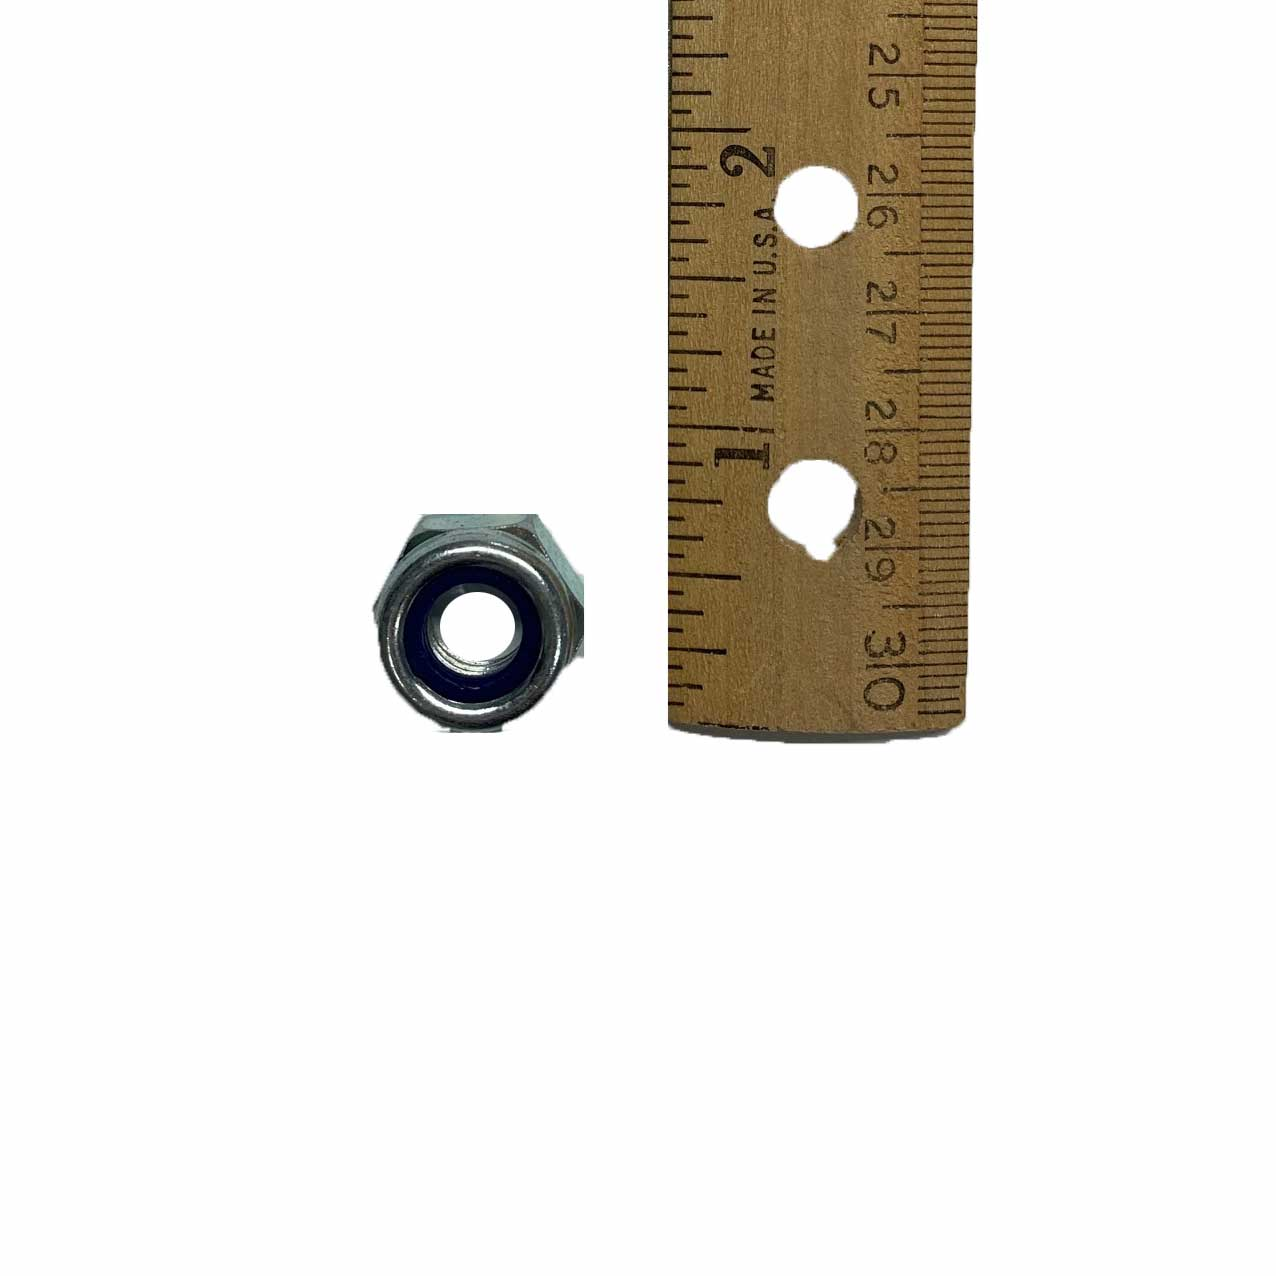 Lock nut and Washer for Ejector Rod (12mm)